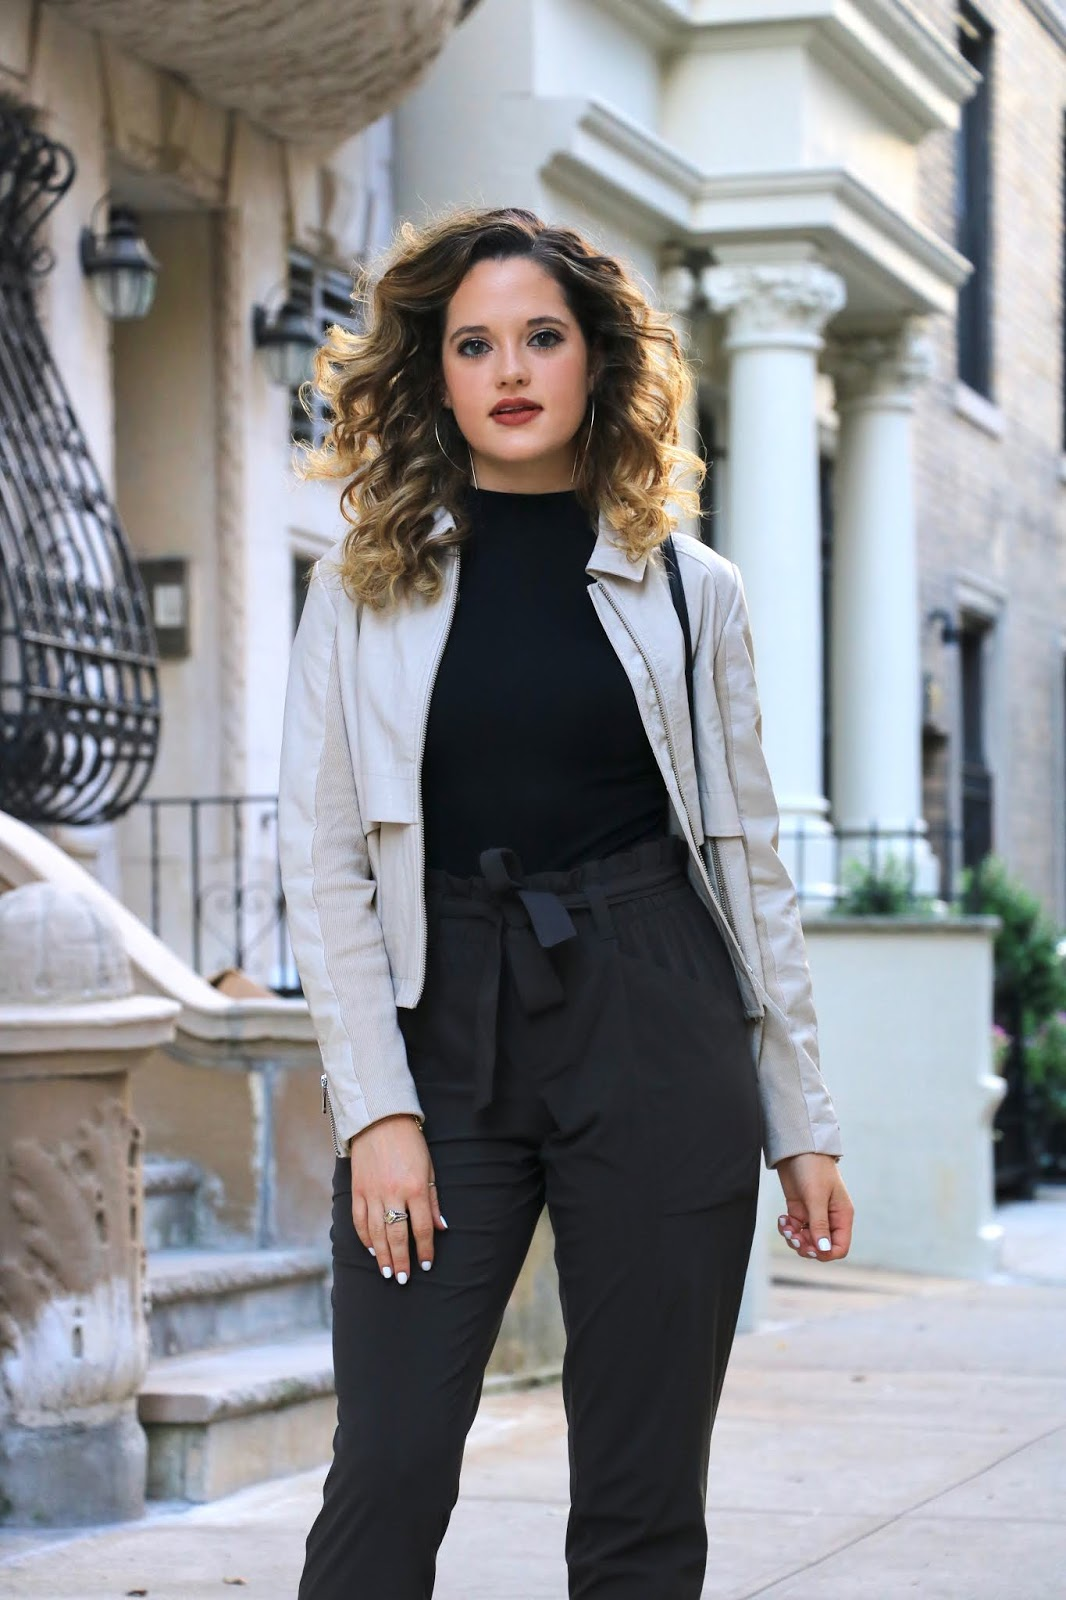 Nyc fashion blogger Kathleen Harper wearing a paper bag pants outfit.